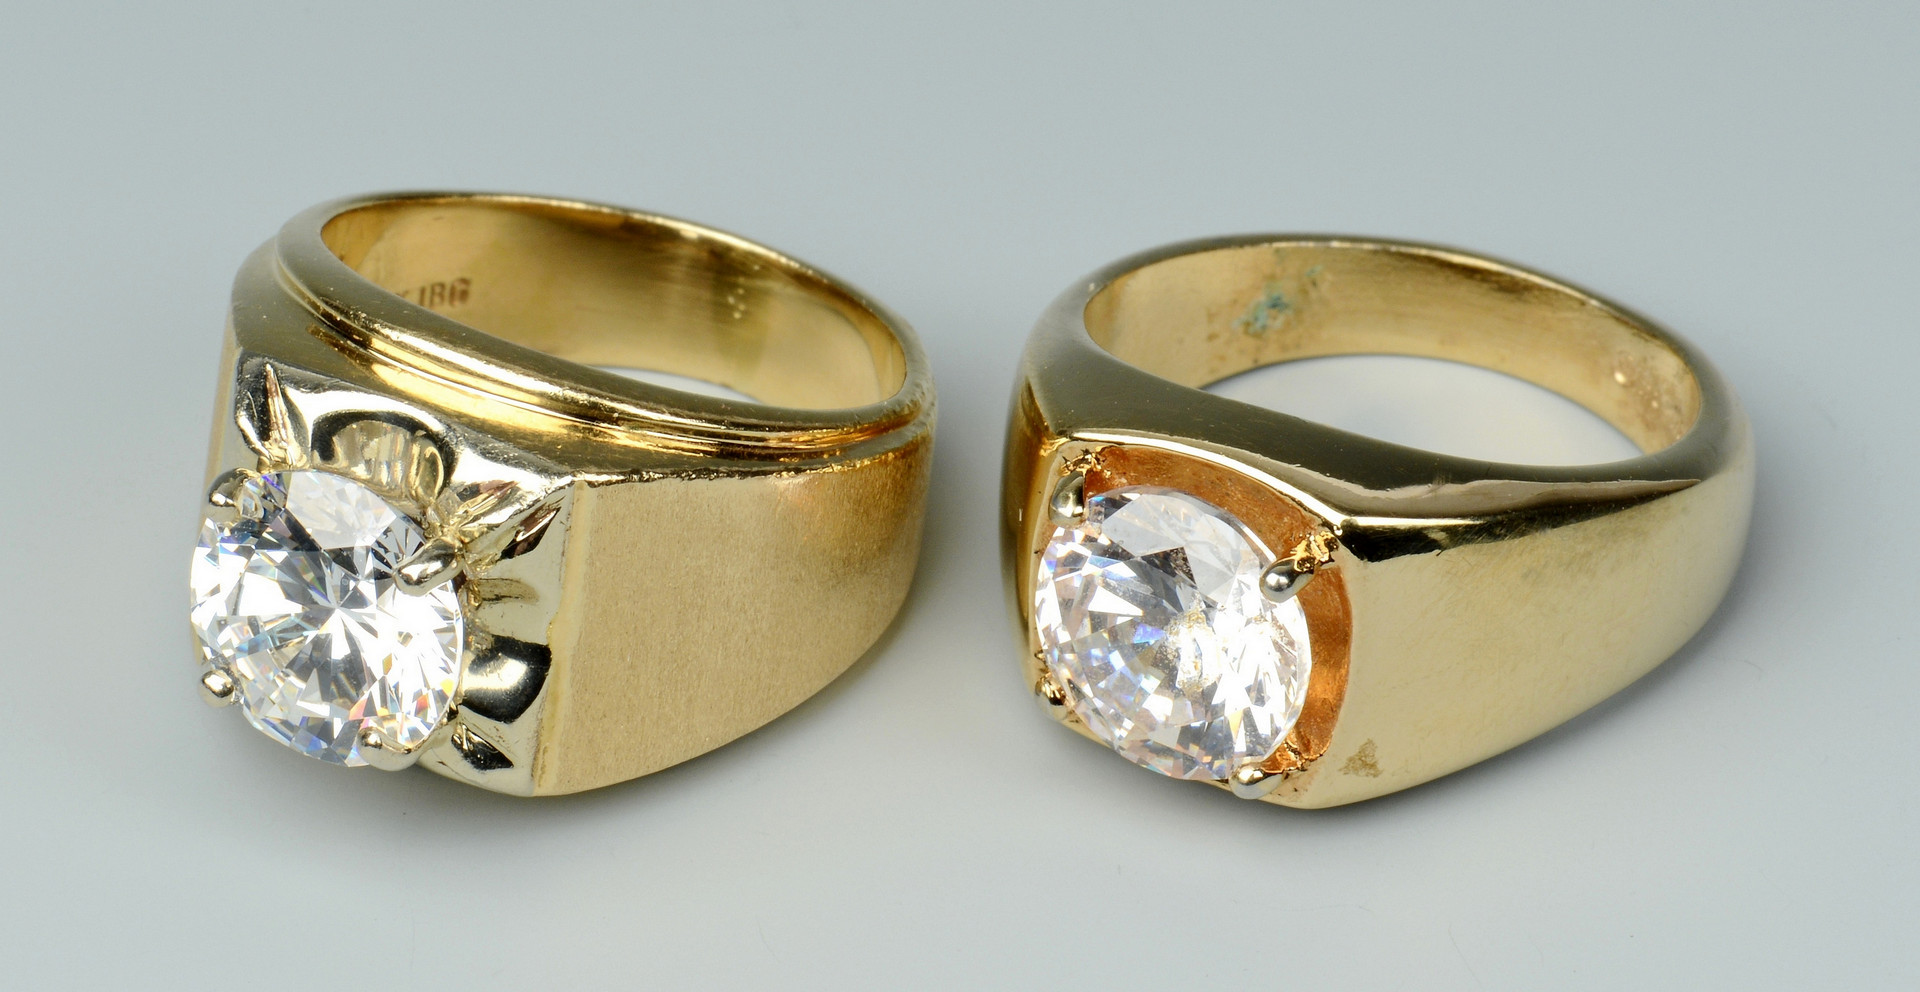 Lot 498: 2 Rings and 1 Watch, 18K & 14K